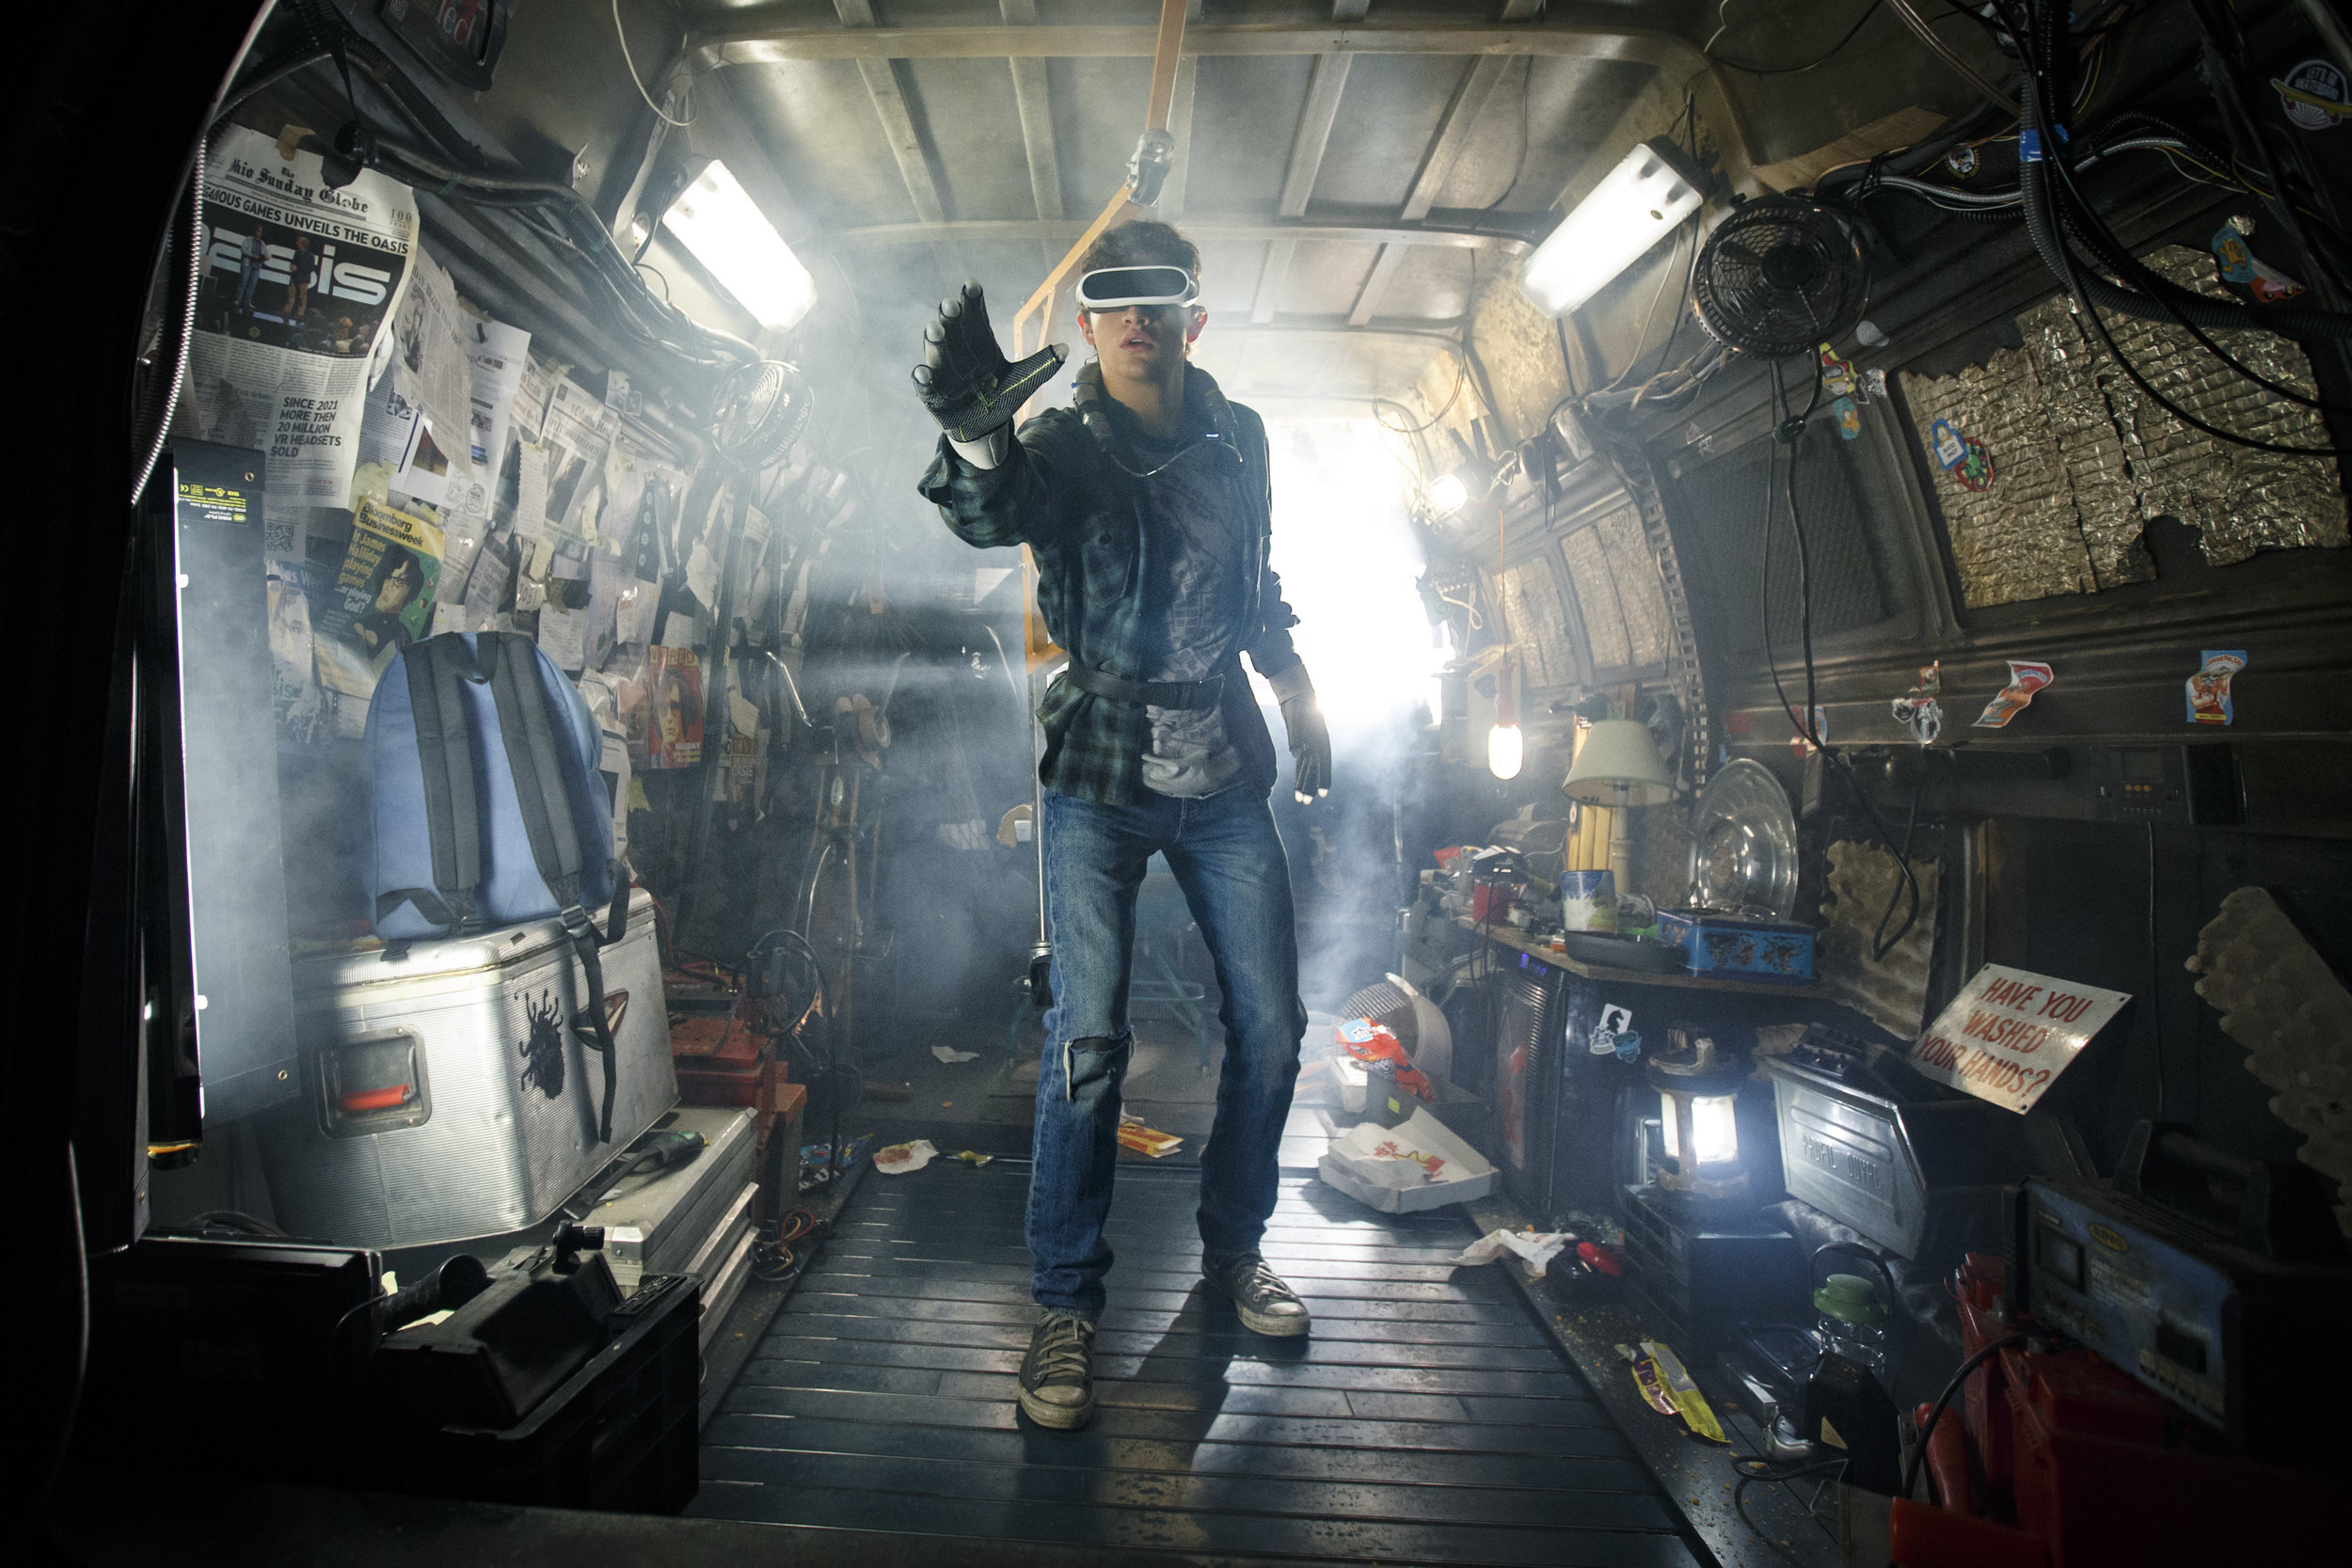 Tye Sheridan finds a whole new world in Ready Player One